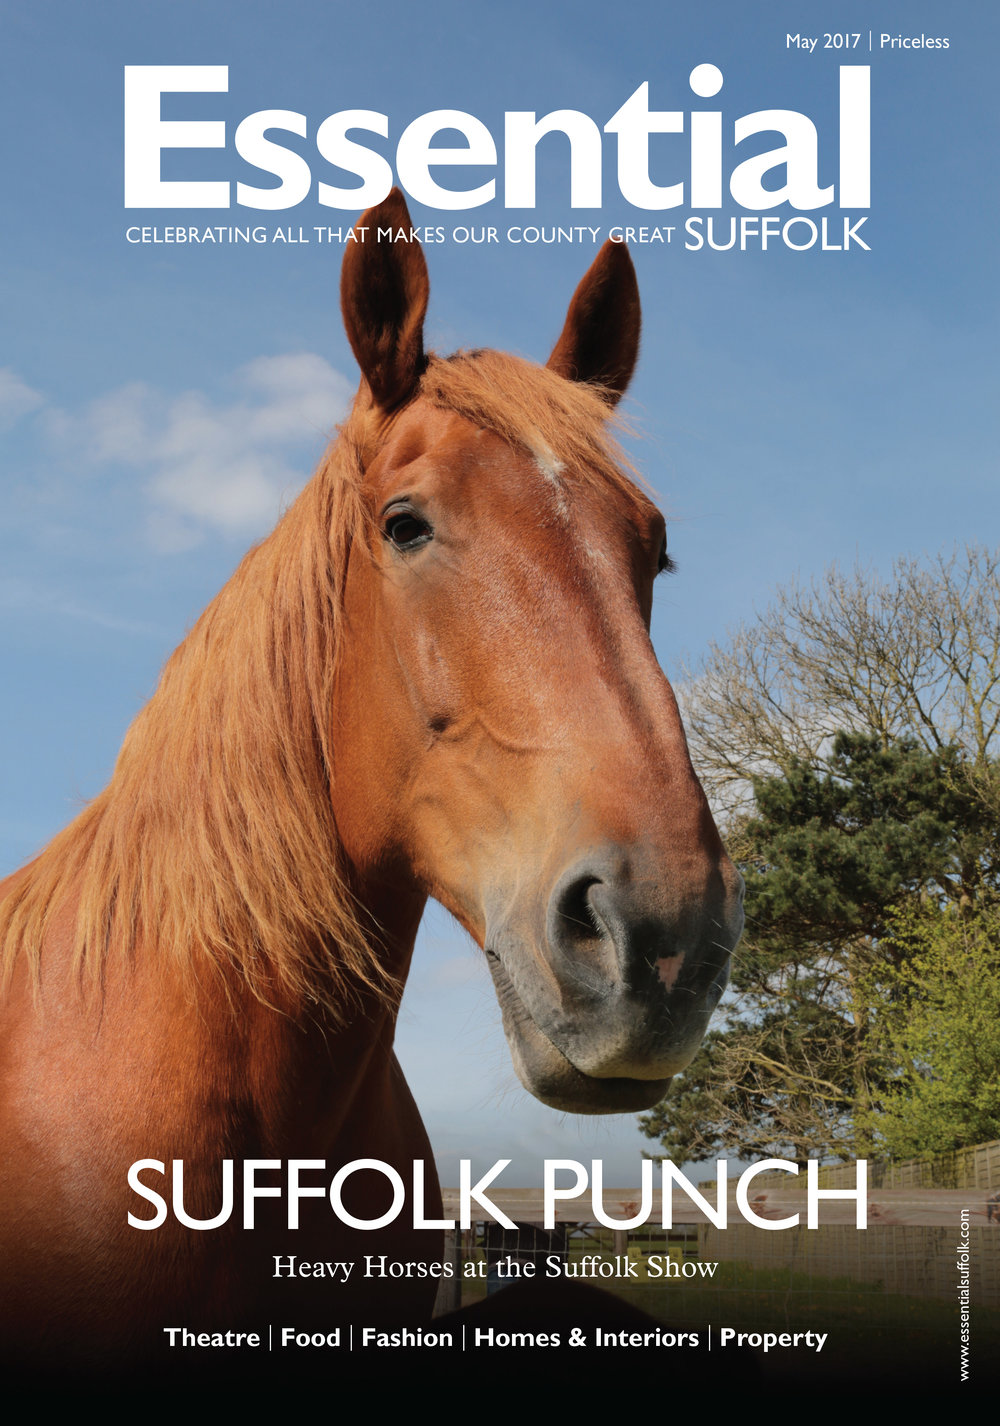 Essential Suffolk May 2017